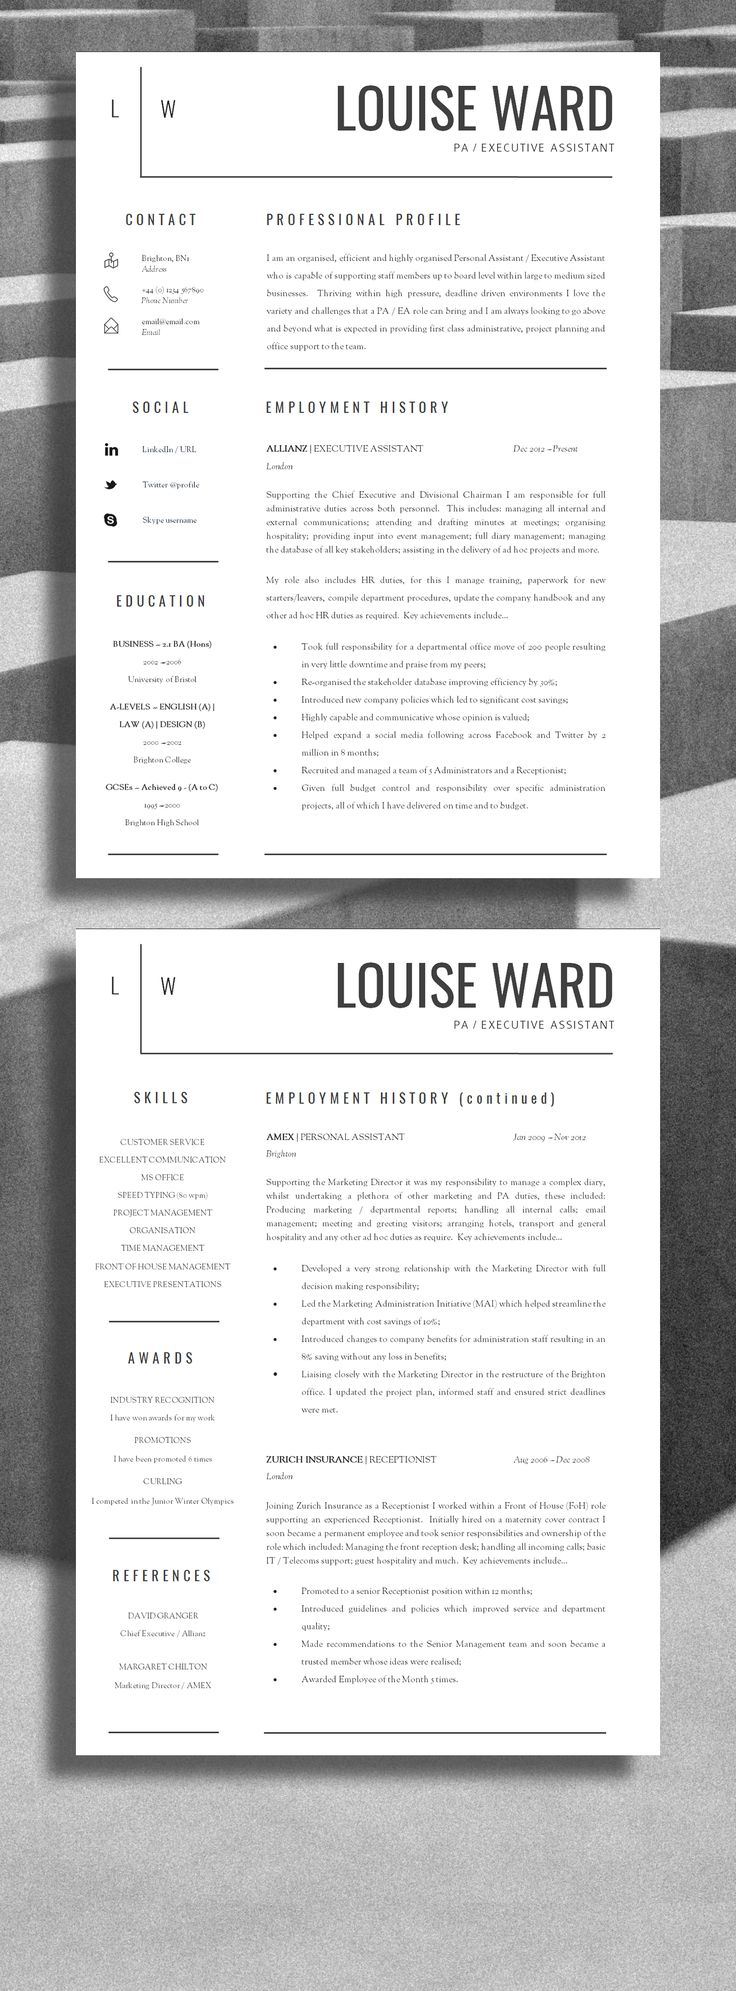 Interior Design Resume Templates Career Objectives For Interior